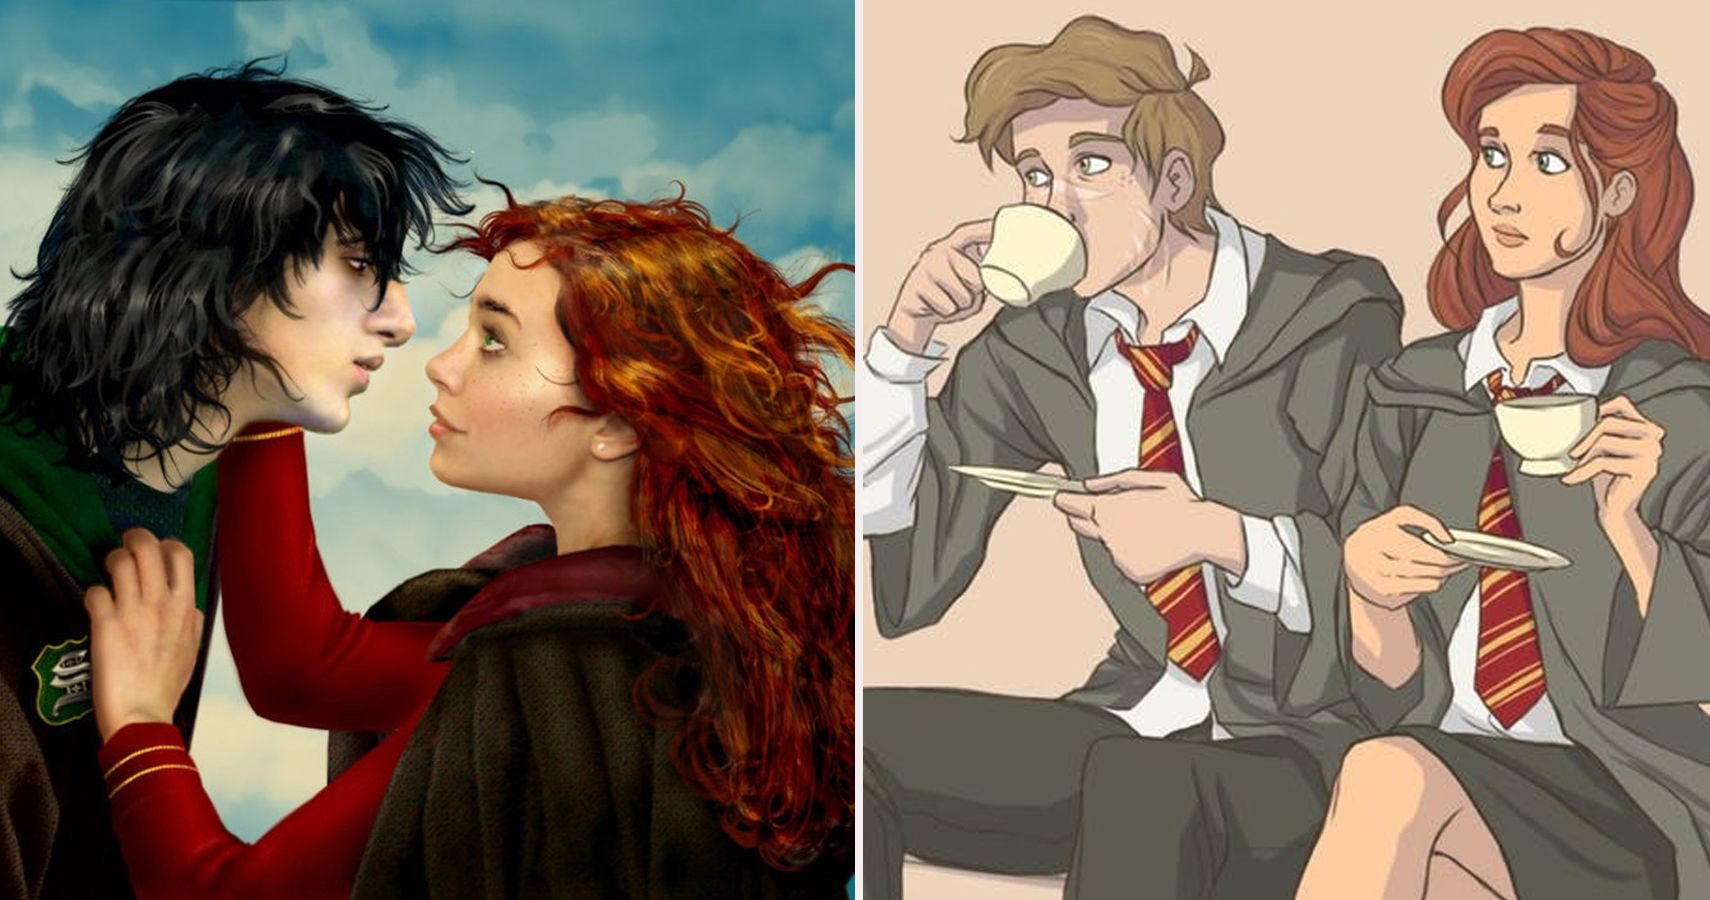 29 Fan Pictures Of Unexpected Harry Potter Couples That Are Extra Sweet